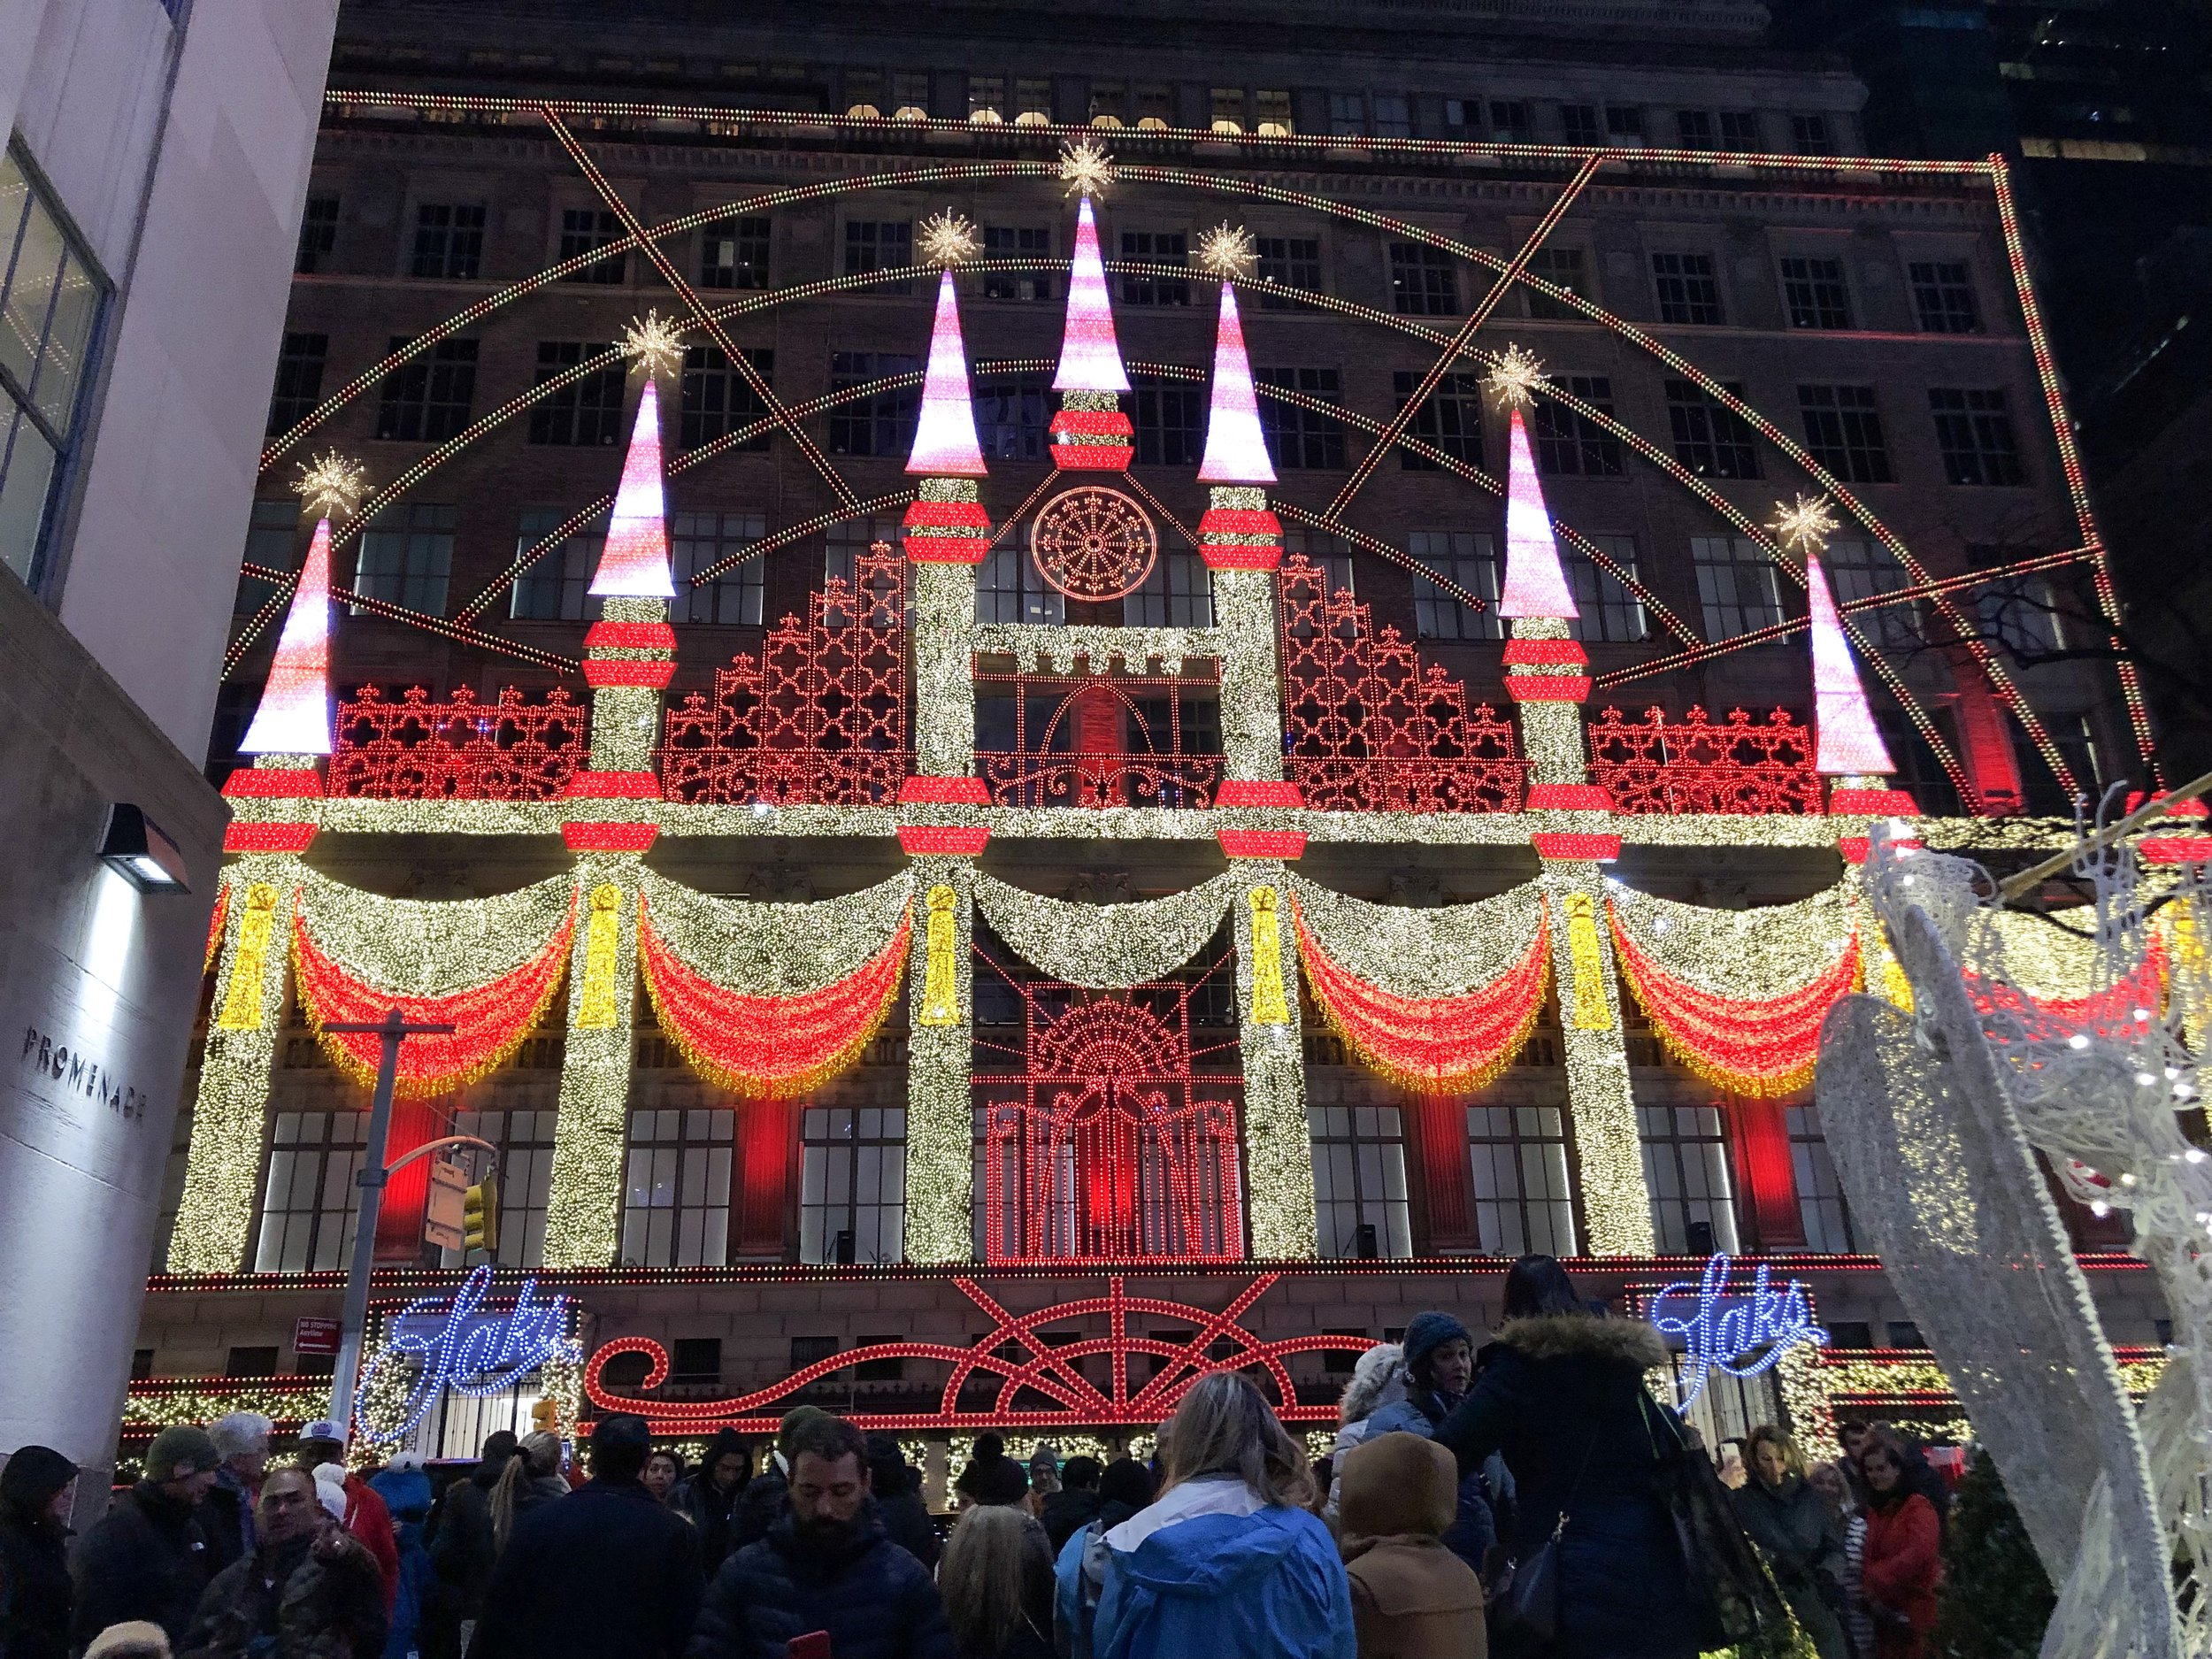 Photo taken by Samantha McHenry. Saks 5th Ave. Christmas Light Show, December 2018.